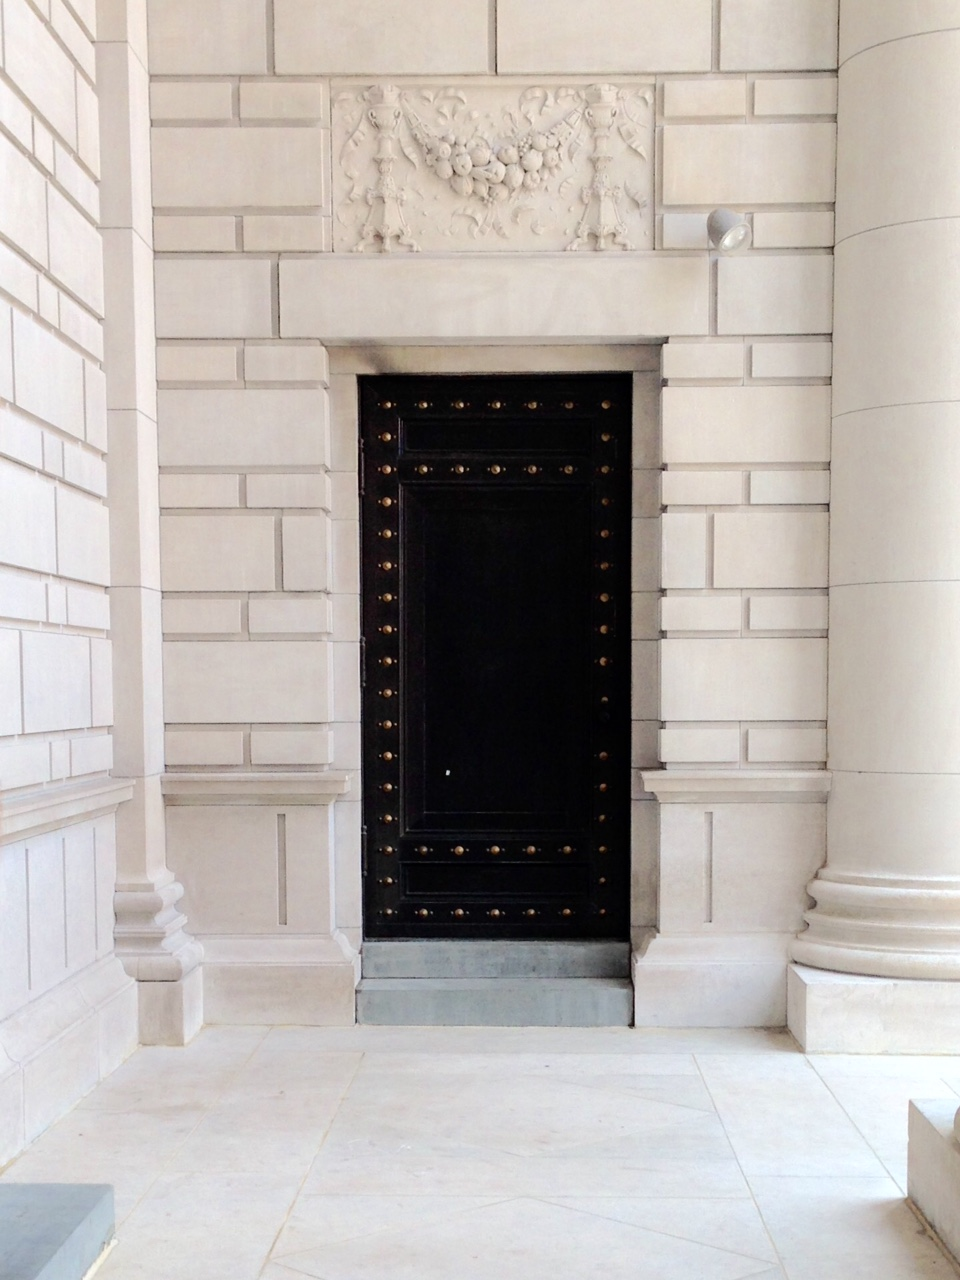 carnegie institution exterior door | champagne takeout